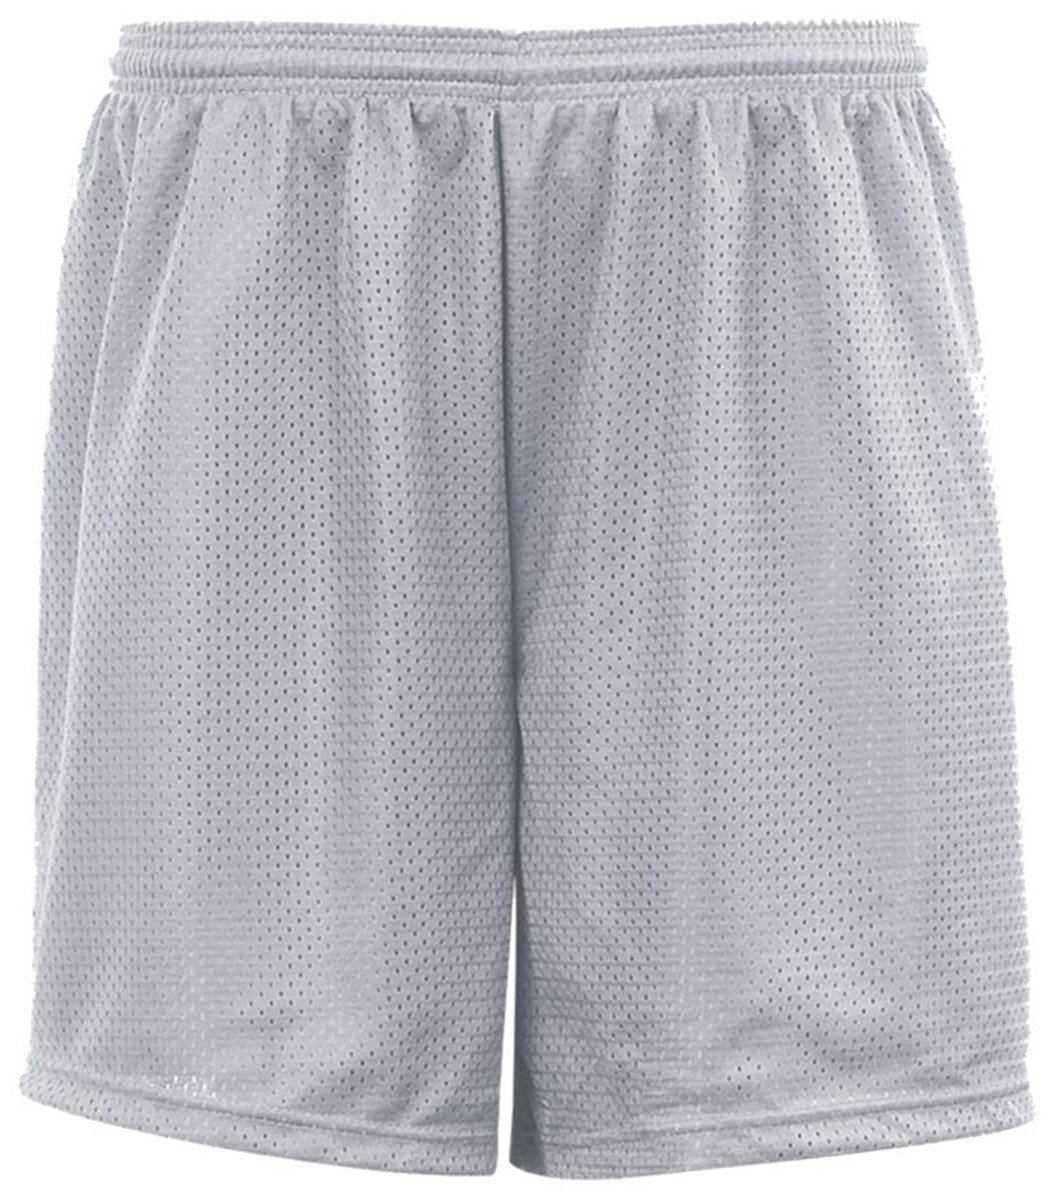 C2 Sport 5209 - Mesh Youth Shorts by C2 Sport